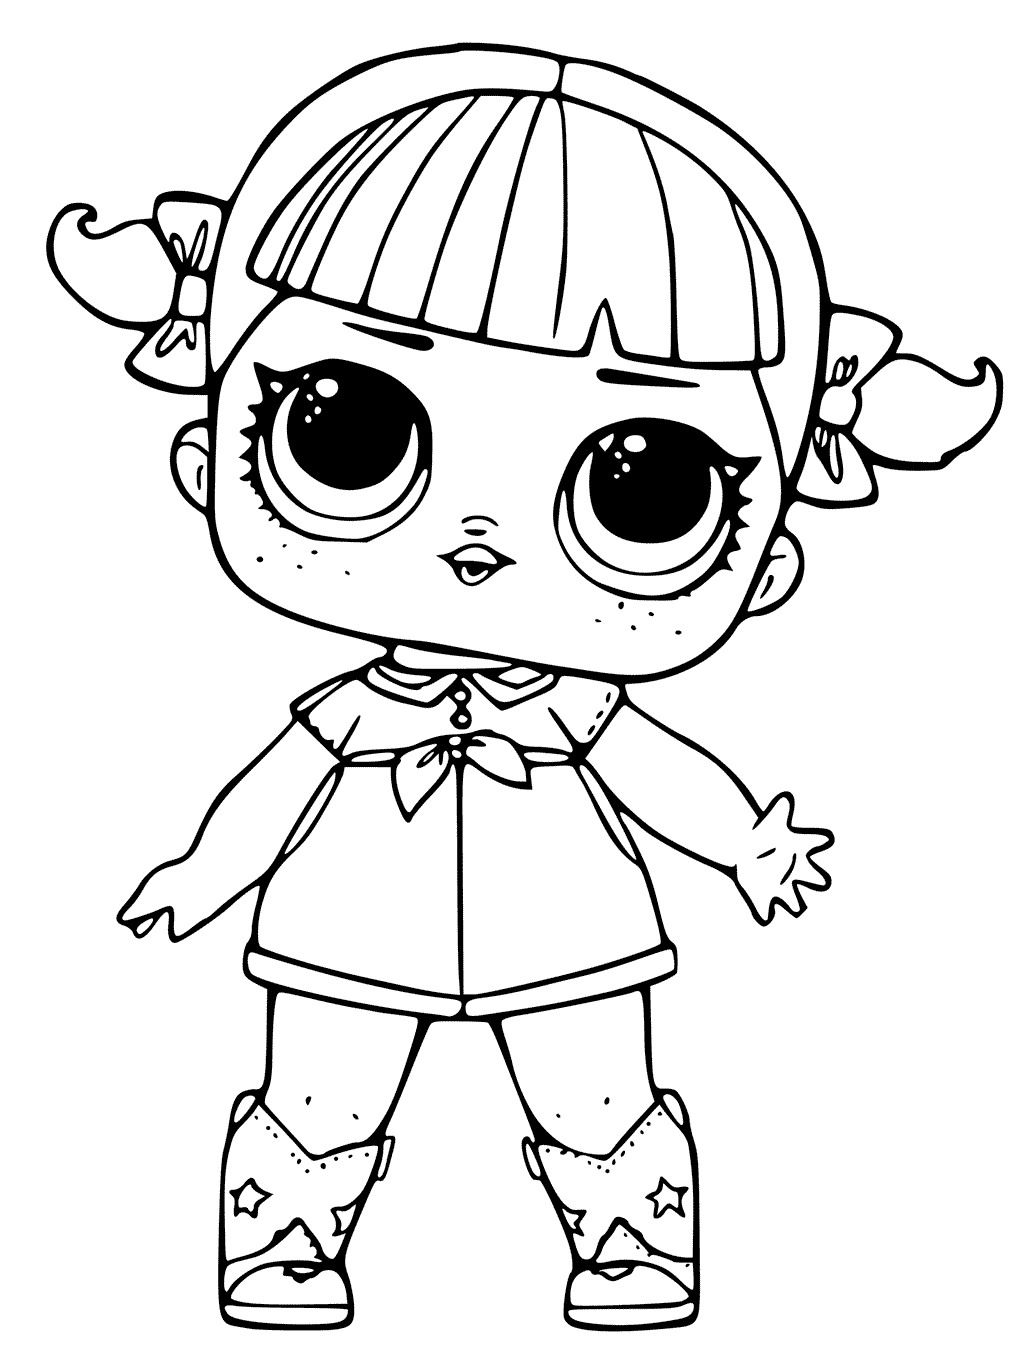 coloring pages dolls - photo#2